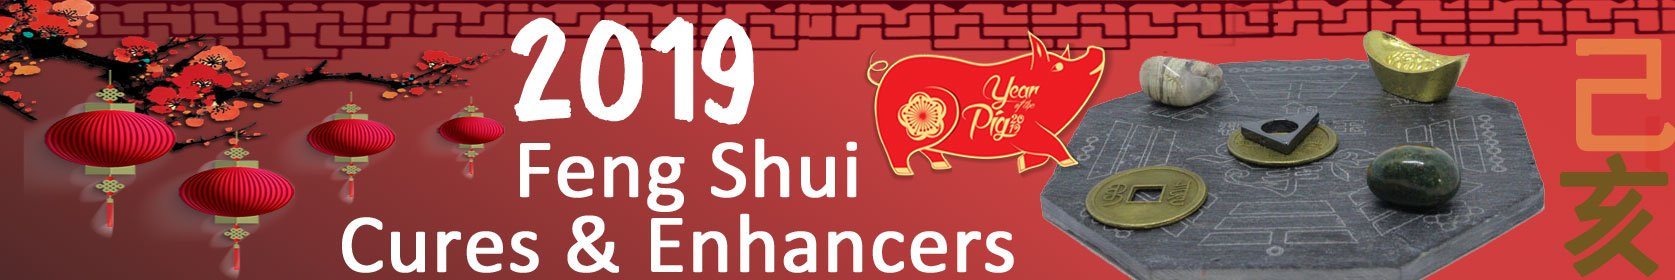 2019 Feng Shui Cures and Enhancers